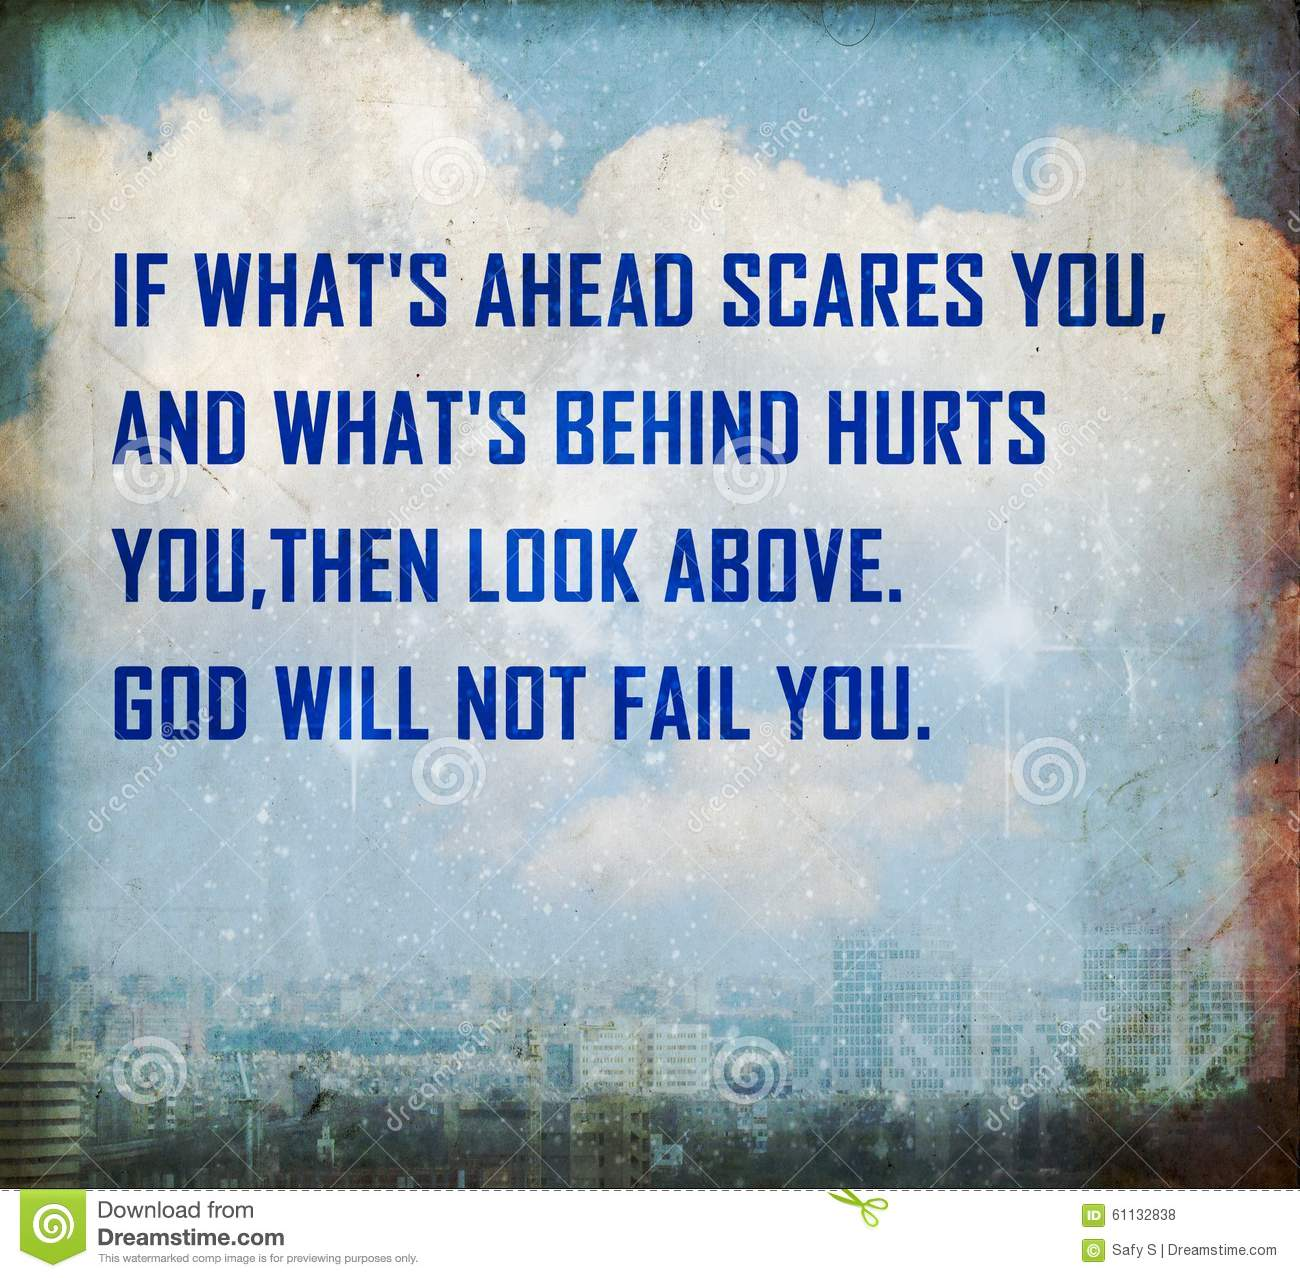 Image of: Optimism Famous Quotation About Hope Not Giving Up If What Ahead Scares You And What Behind Hurts You Ancient Latin Proverb Printed On Grunge Vintage Cardboard Dreamstimecom Famous Quote About Hope Stock Photo Image Of Citation 61132838